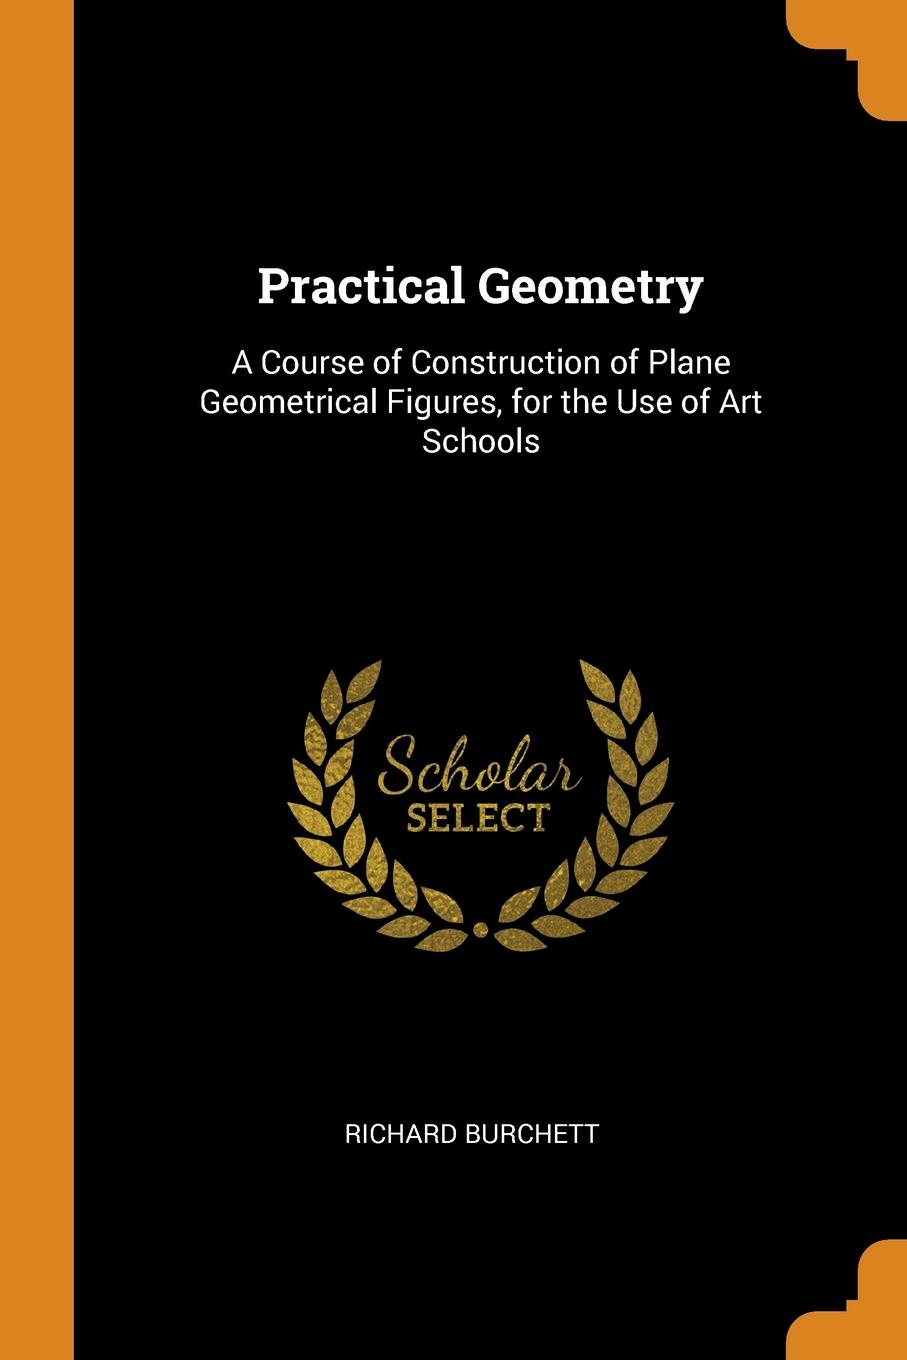 Practical Geometry. A Course of Construction of Plane Geometrical Figures, for the Use of Art Schools